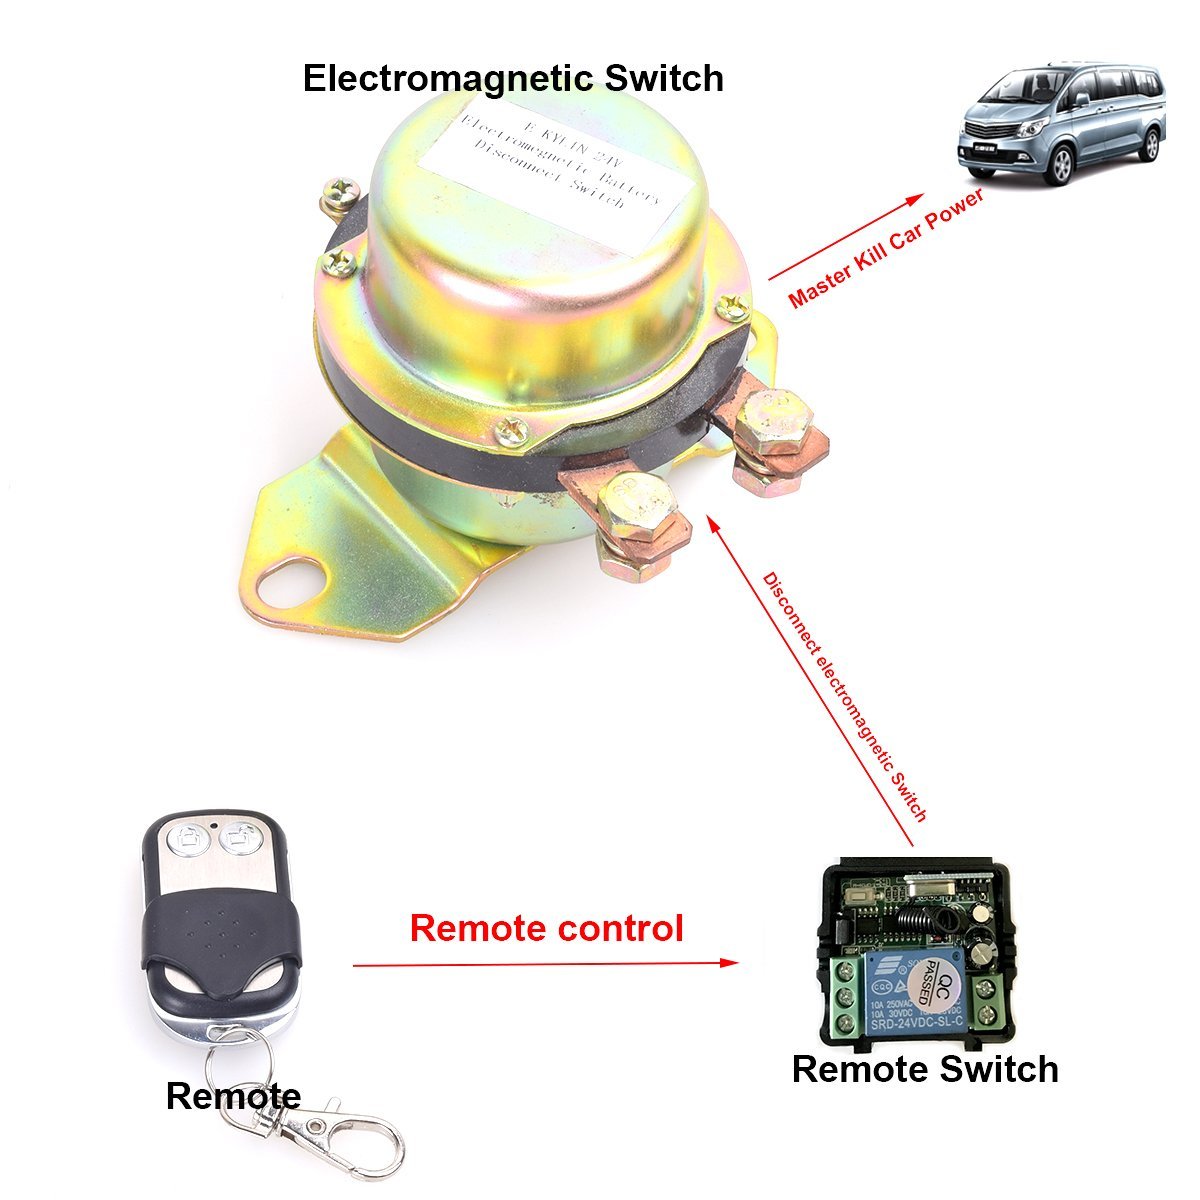 Car Auto Remote Control Battery Switch Disconnect Anti-theft DC 12V Latching Relay Electromagnetic Solenoid Valve Power Switch Terminal Master Kill System No Open The Front Hood